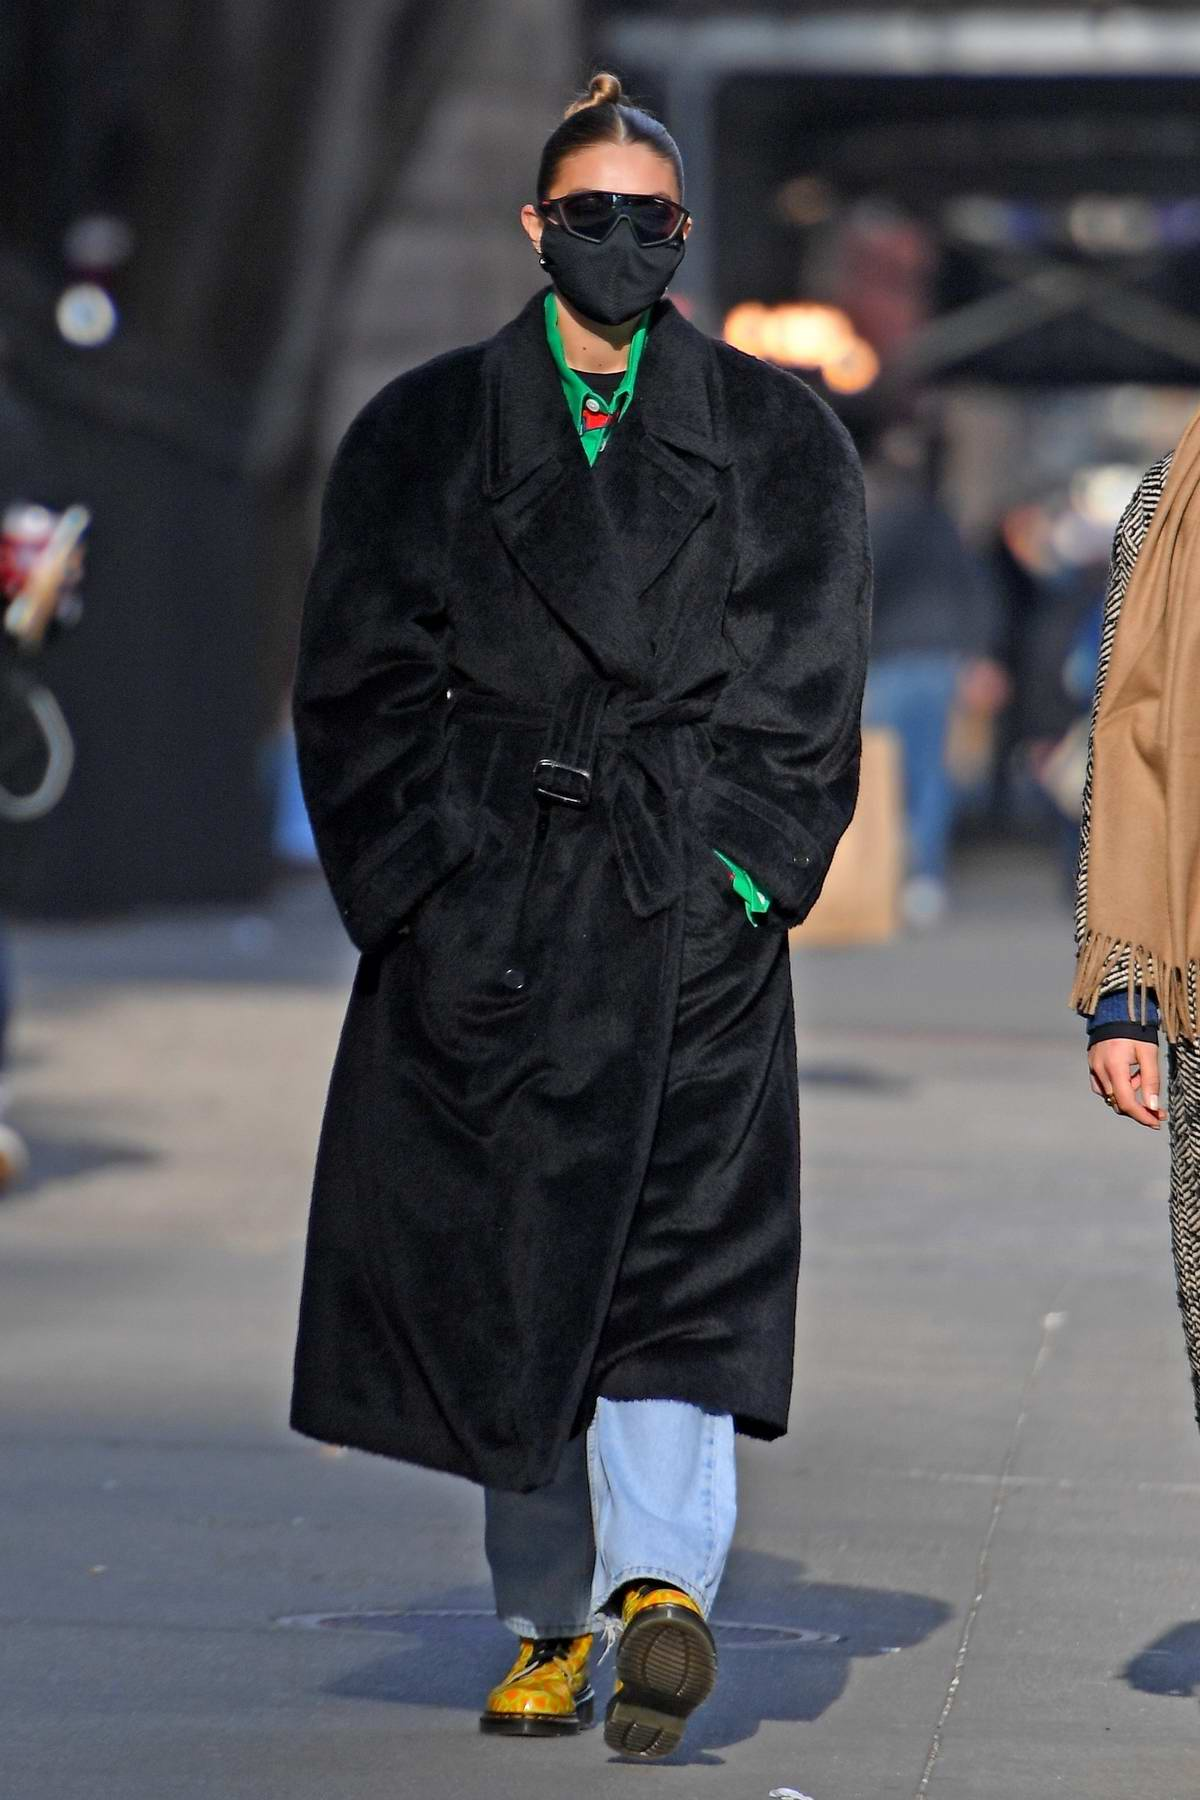 Gigi Hadid keeps warm in a full-length black coat while out for stroll in New York City